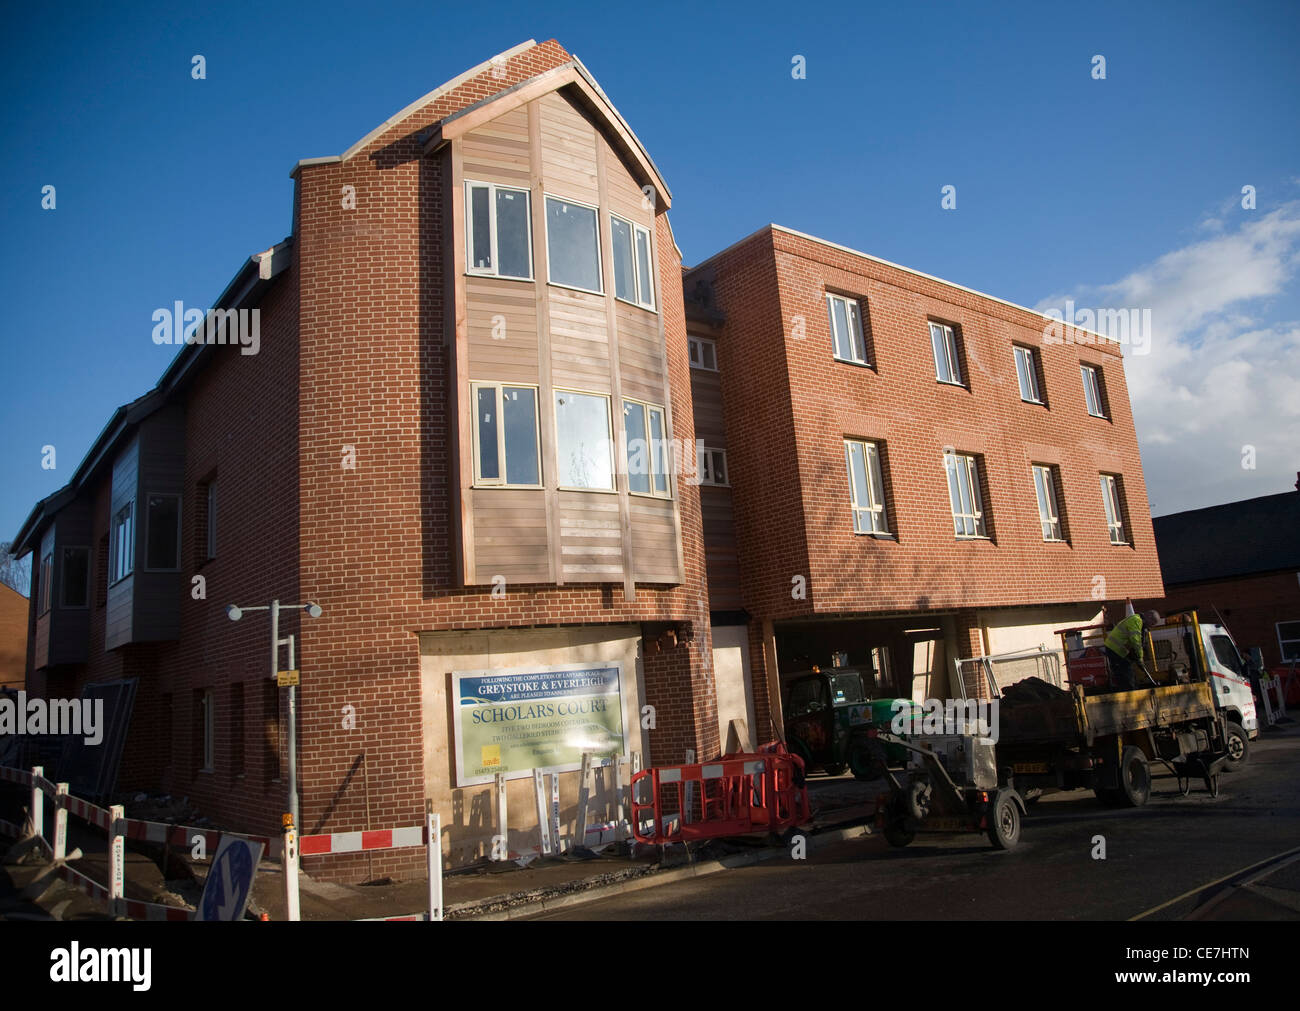 New Scholars Court housing development, Woodbridge, Suffolk, England - Stock Image